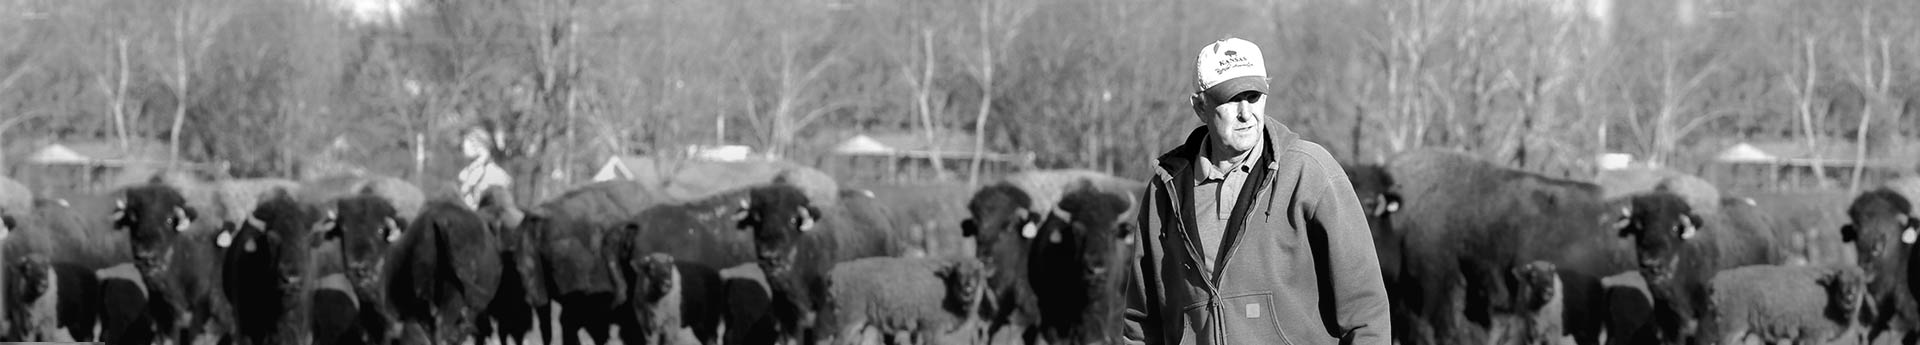 Bob of Bluegrass Bison in Shelbyville, Kentucky. Trusted Bison Supplier.